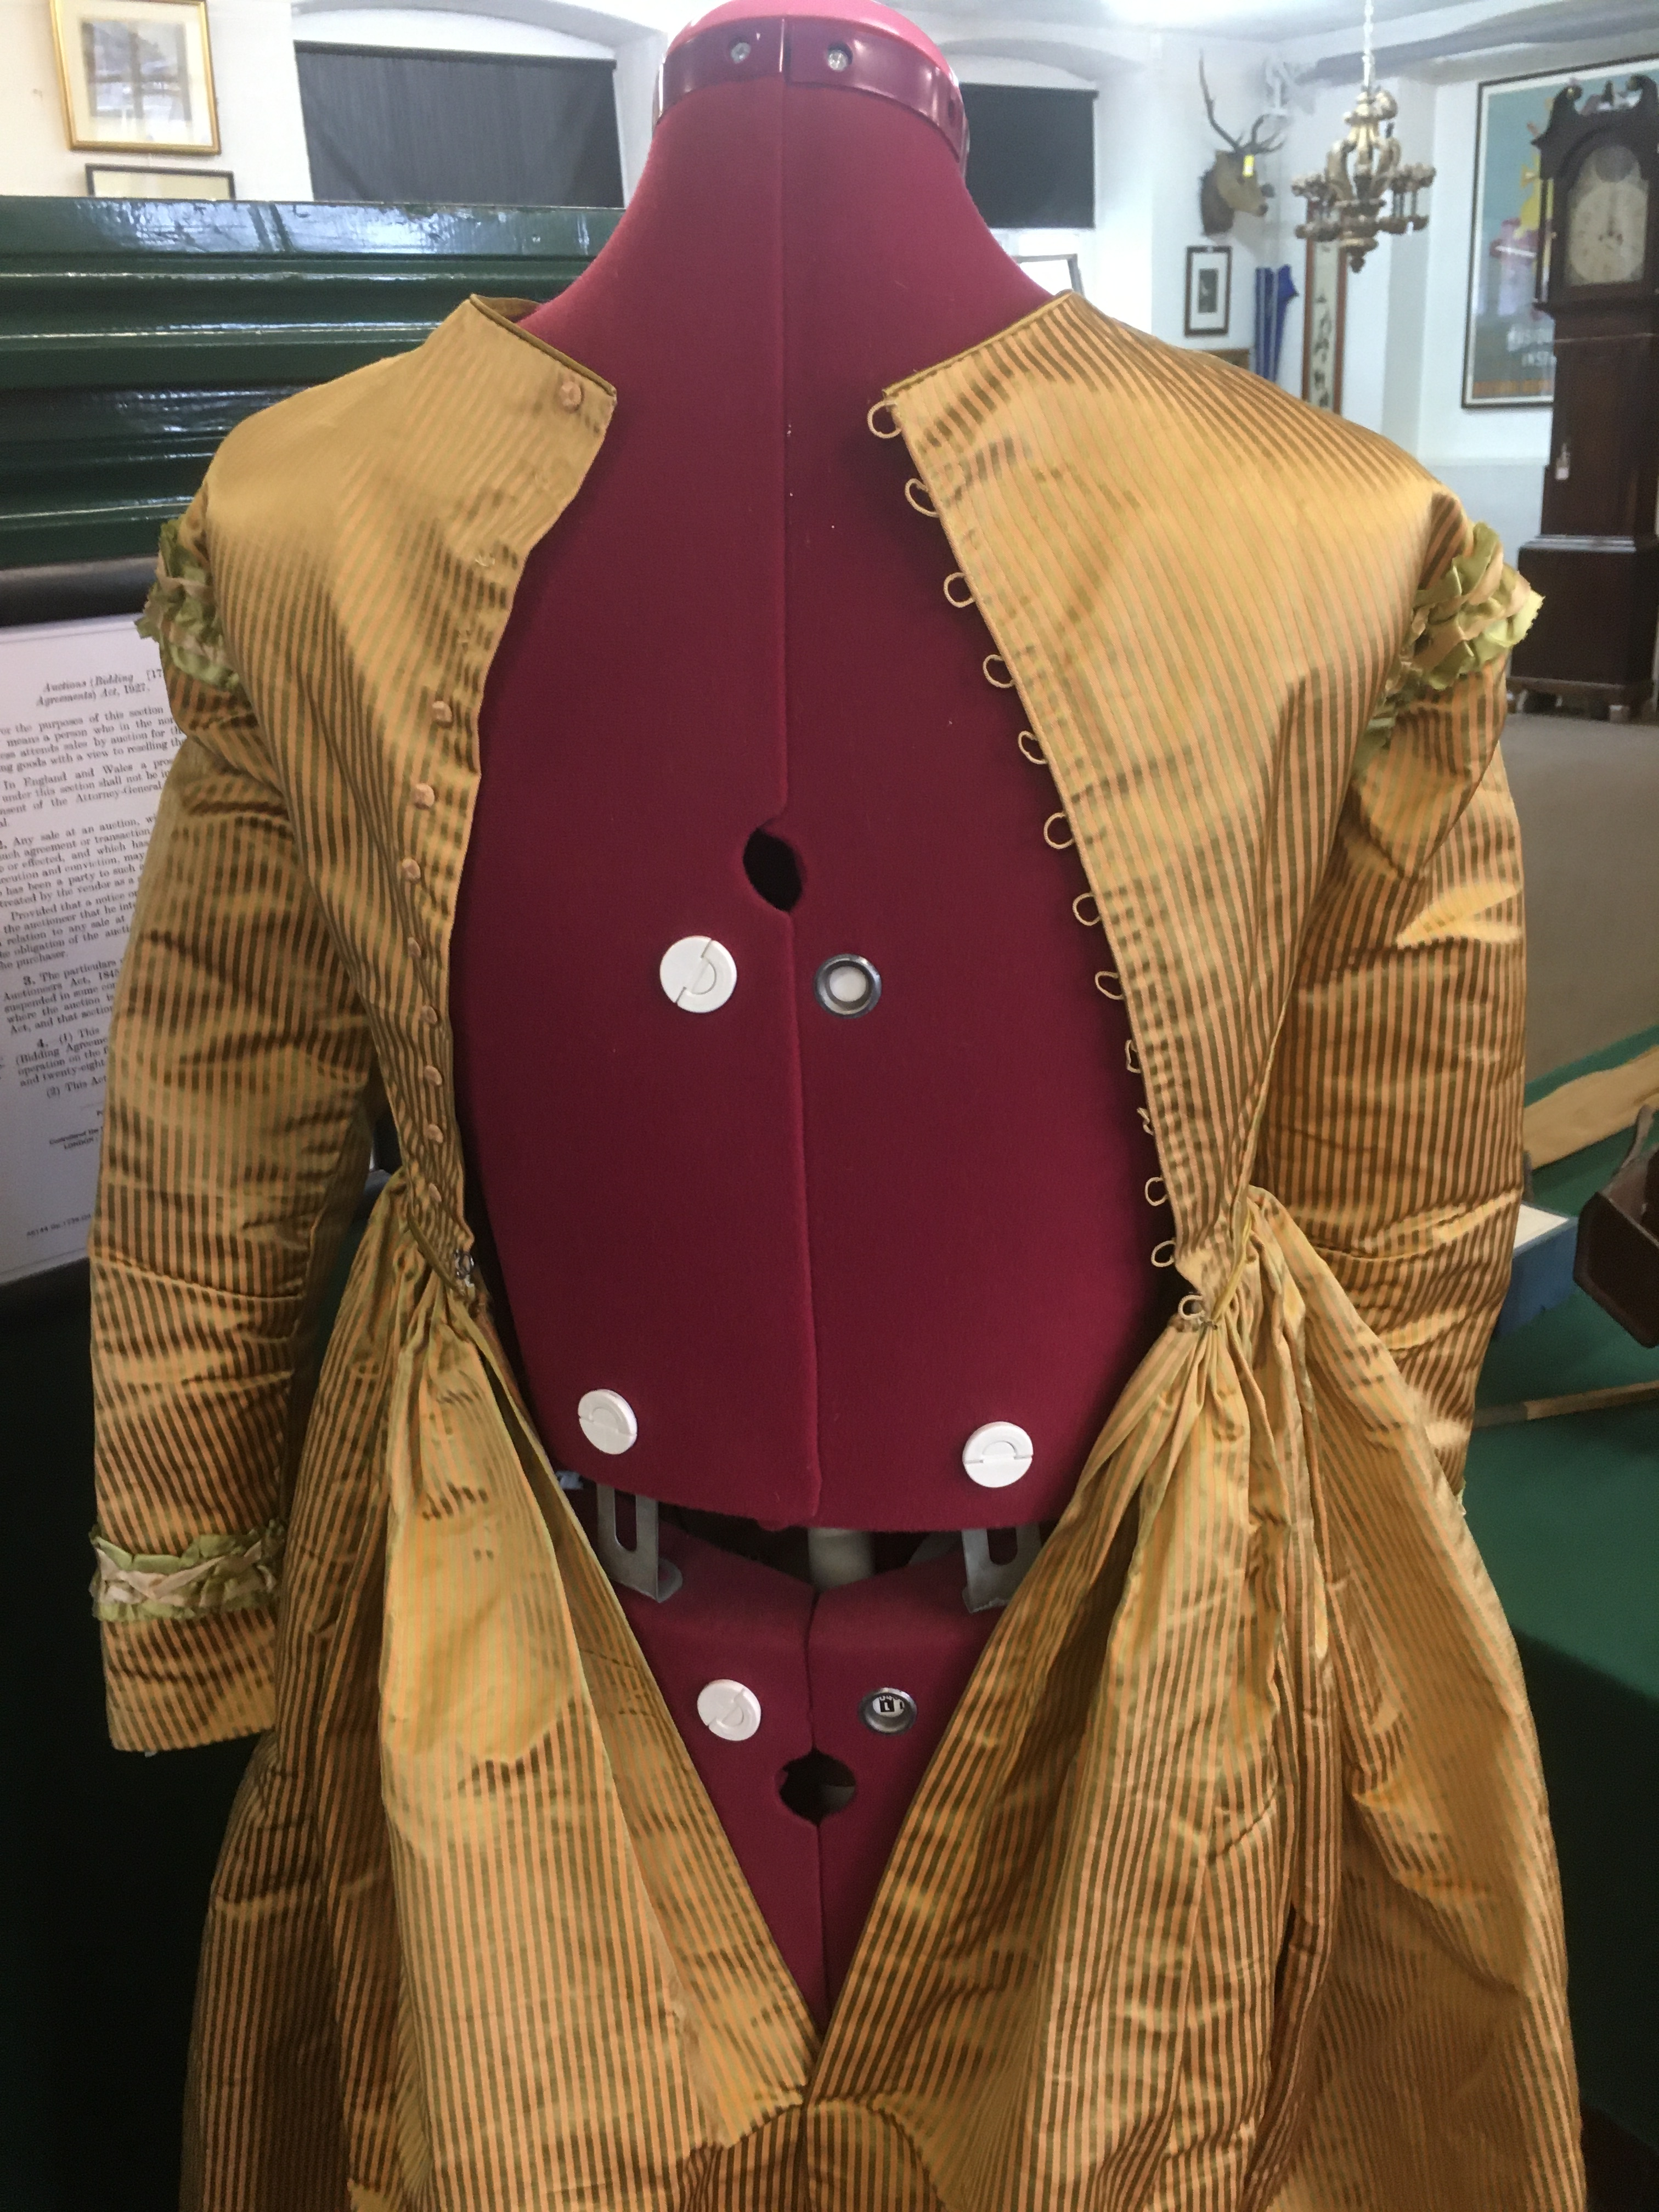 19THC SILK LADIES DRESS a mid 19thc apricot and olive green striped silk dress, decorated with - Image 4 of 9